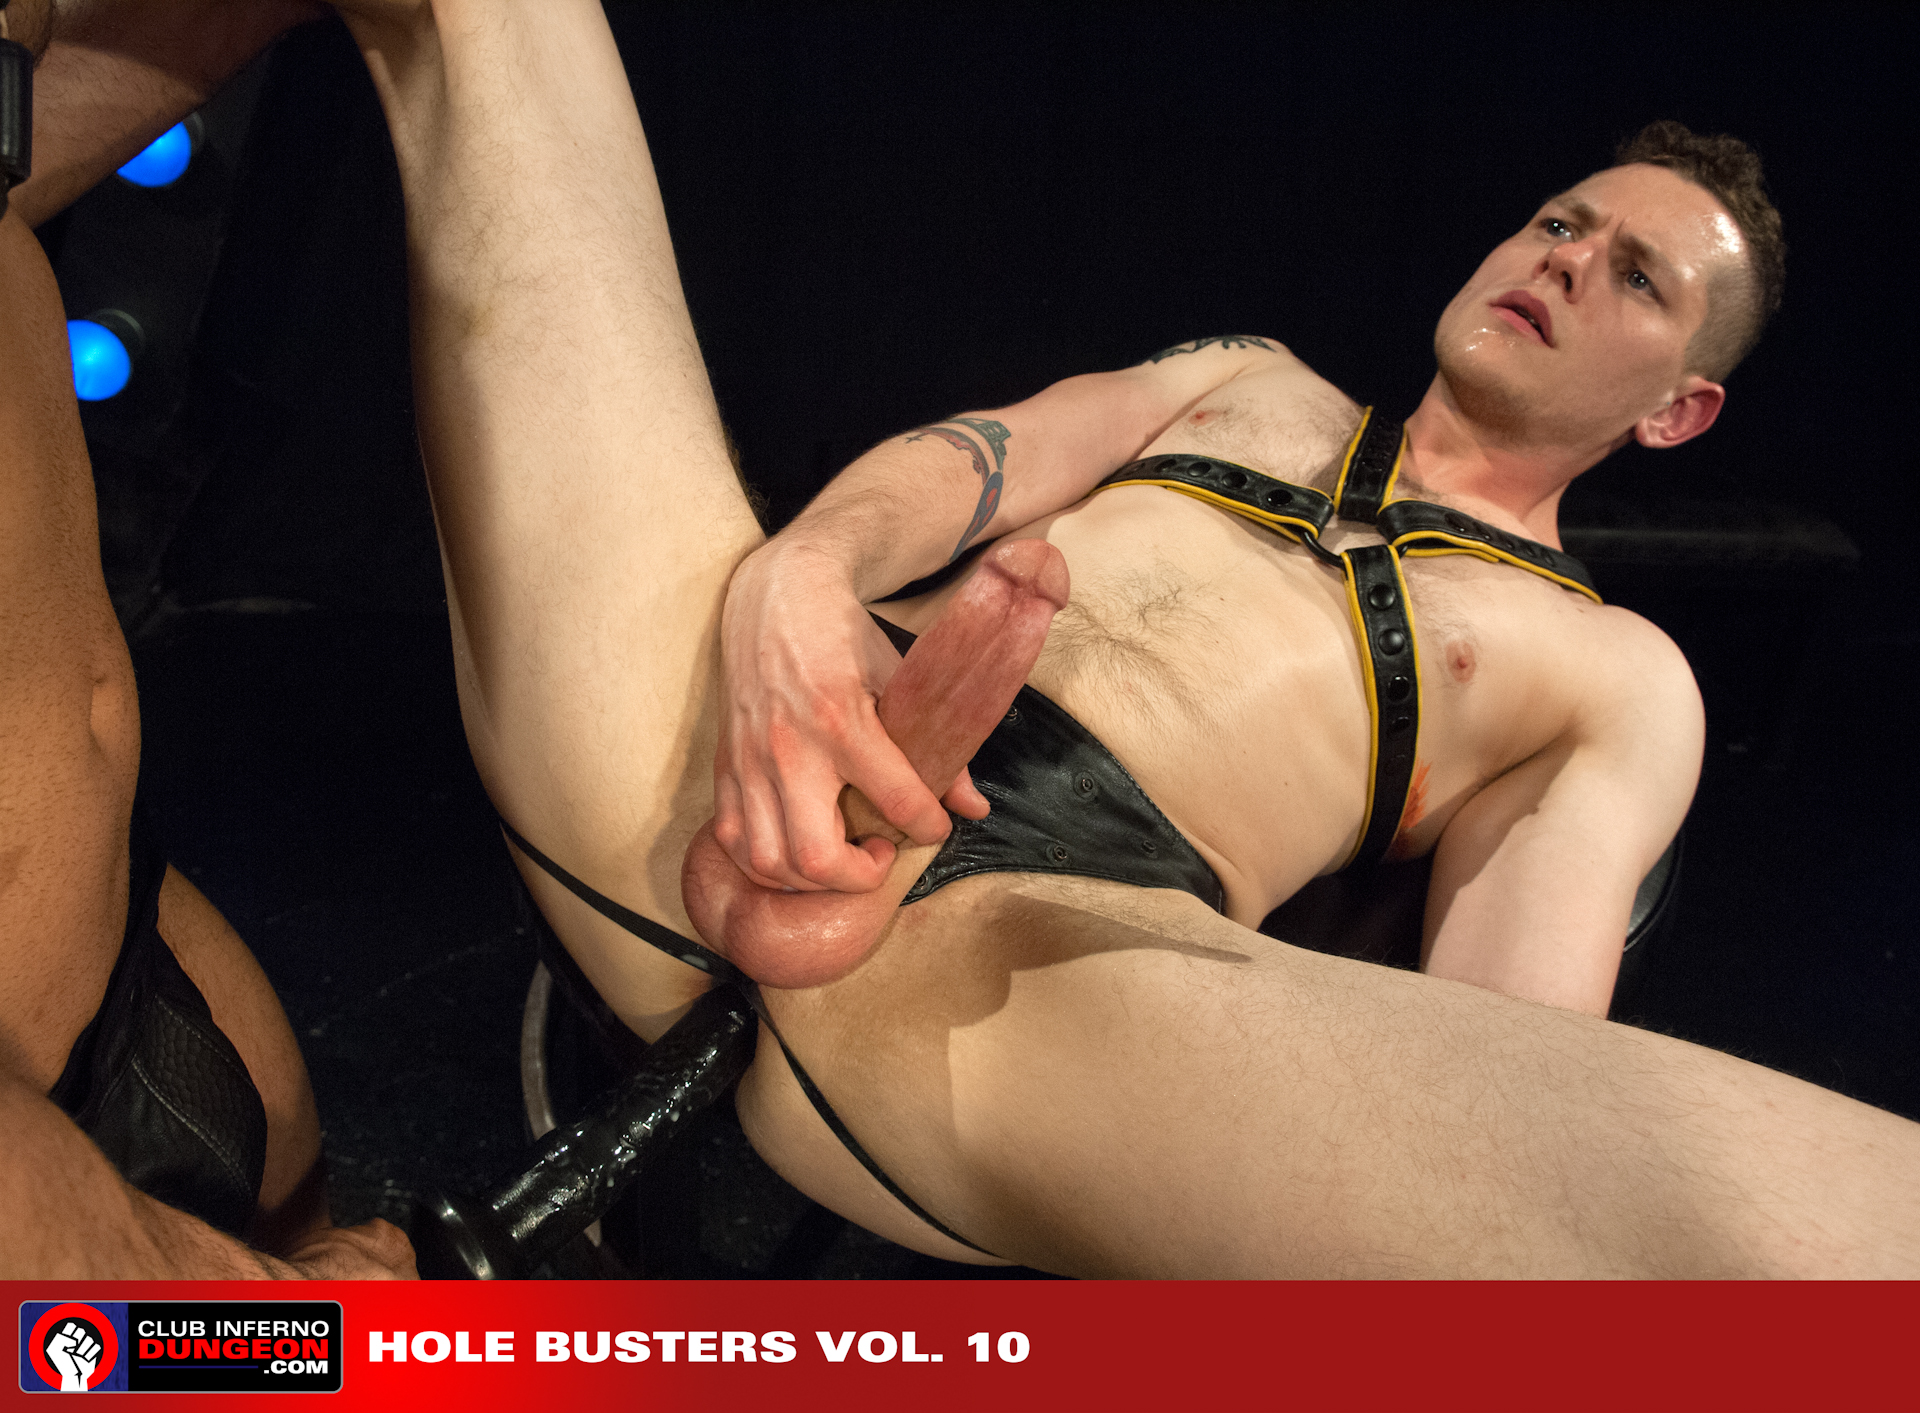 Marcus Ruhl spies Blue Bailey lying on his back accessible and waiting for some hardcore assplay. Marcus teases Blue's tight hole then makes him beg to be plowed with a footlong latex cock. Marcus works Blue's hole over long and hard then swaps in foreign